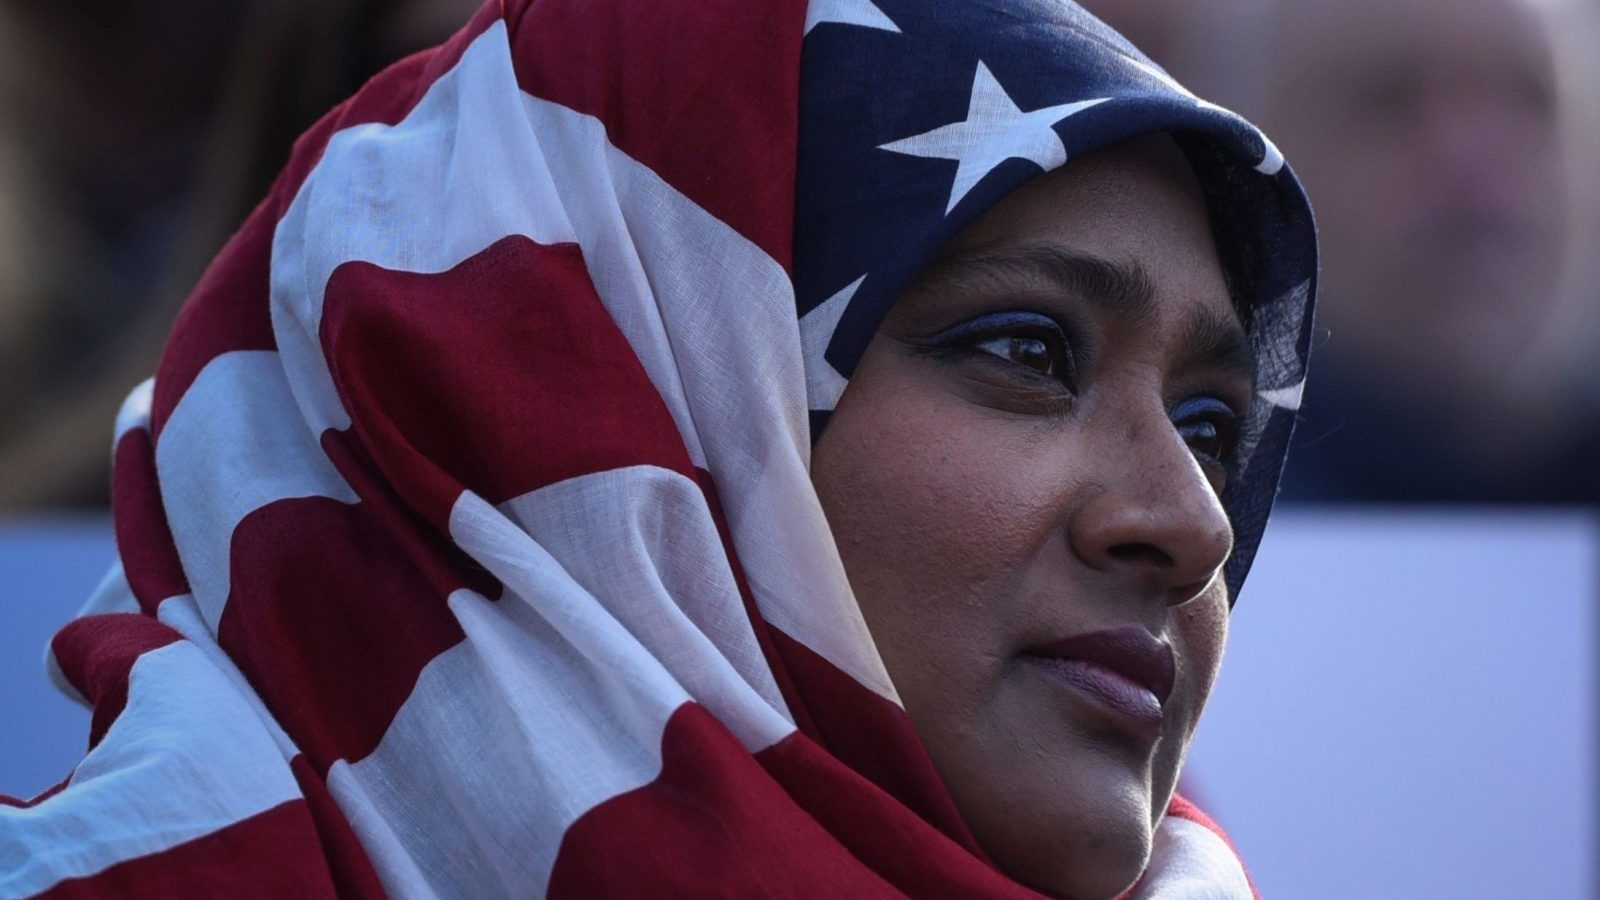 woman with american flag themed hijab